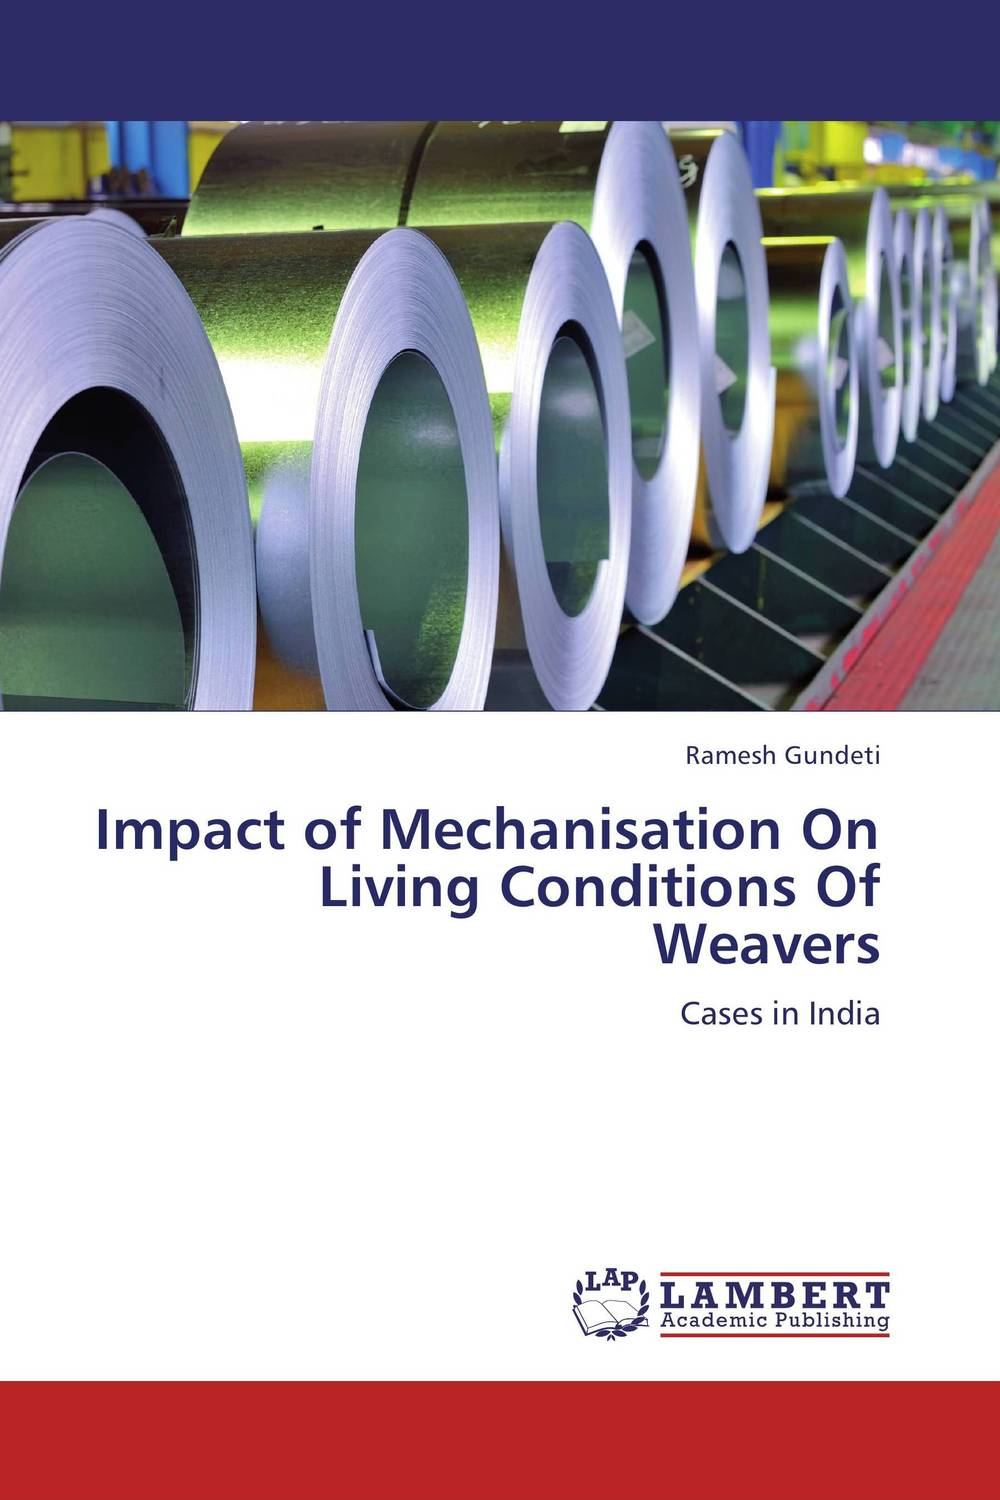 Impact of Mechanisation On Living Conditions Of Weavers kazi rifat ahmed simu akter and kushal roy alternative development loom by reason of natural changes